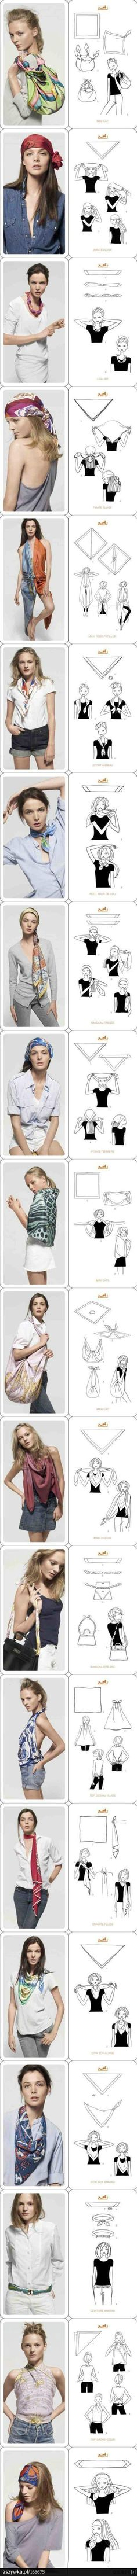 How to tie scarves - so many great ideas